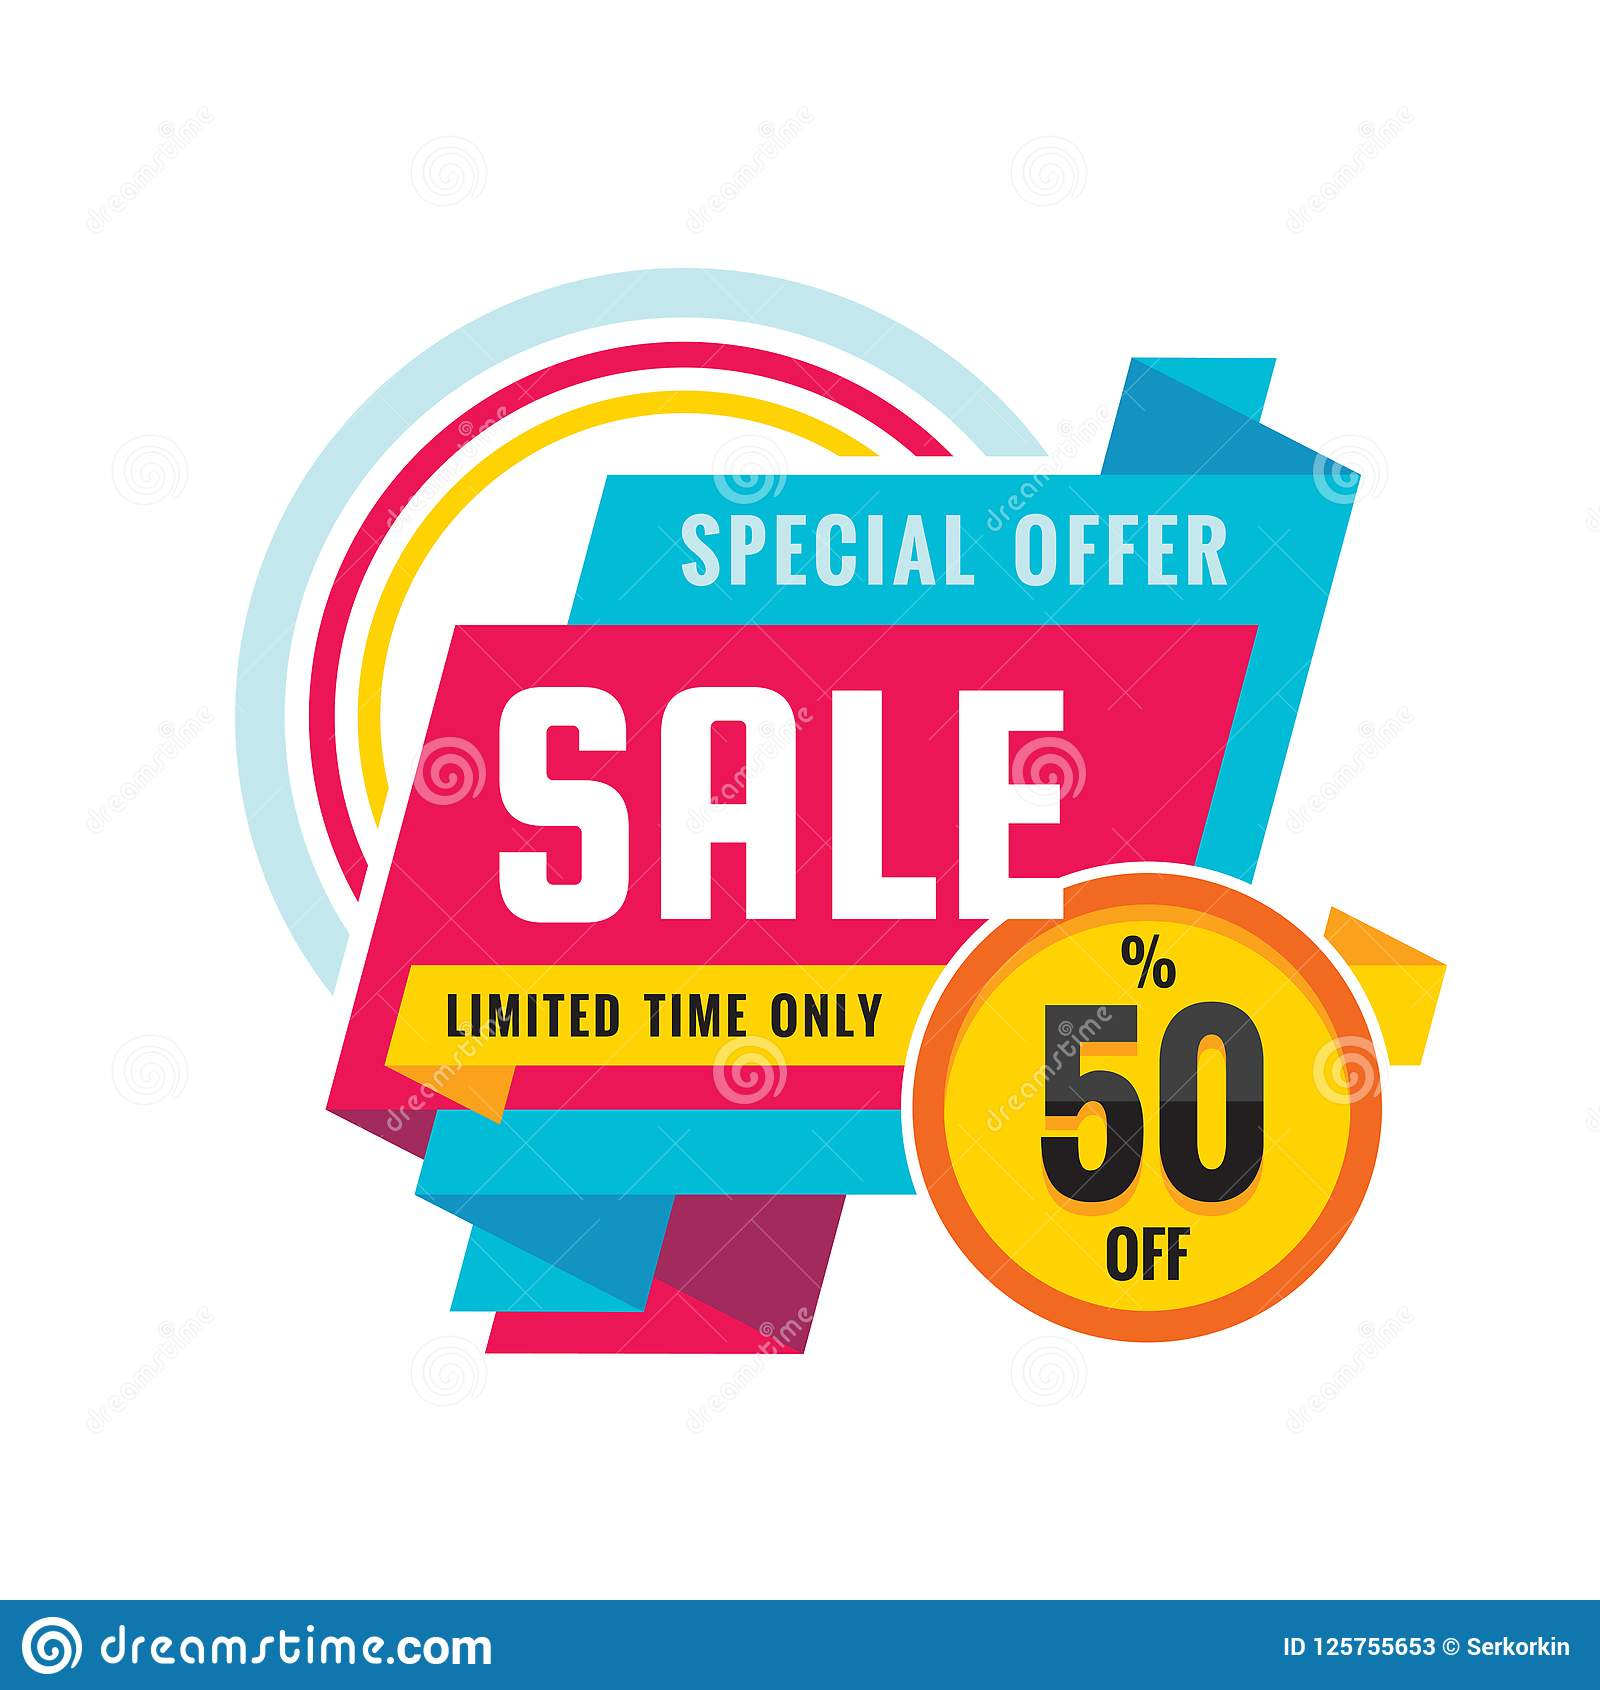 Sale - creative banner vector illustration. Abstract concept discount up to 50  promotion layout on white background.